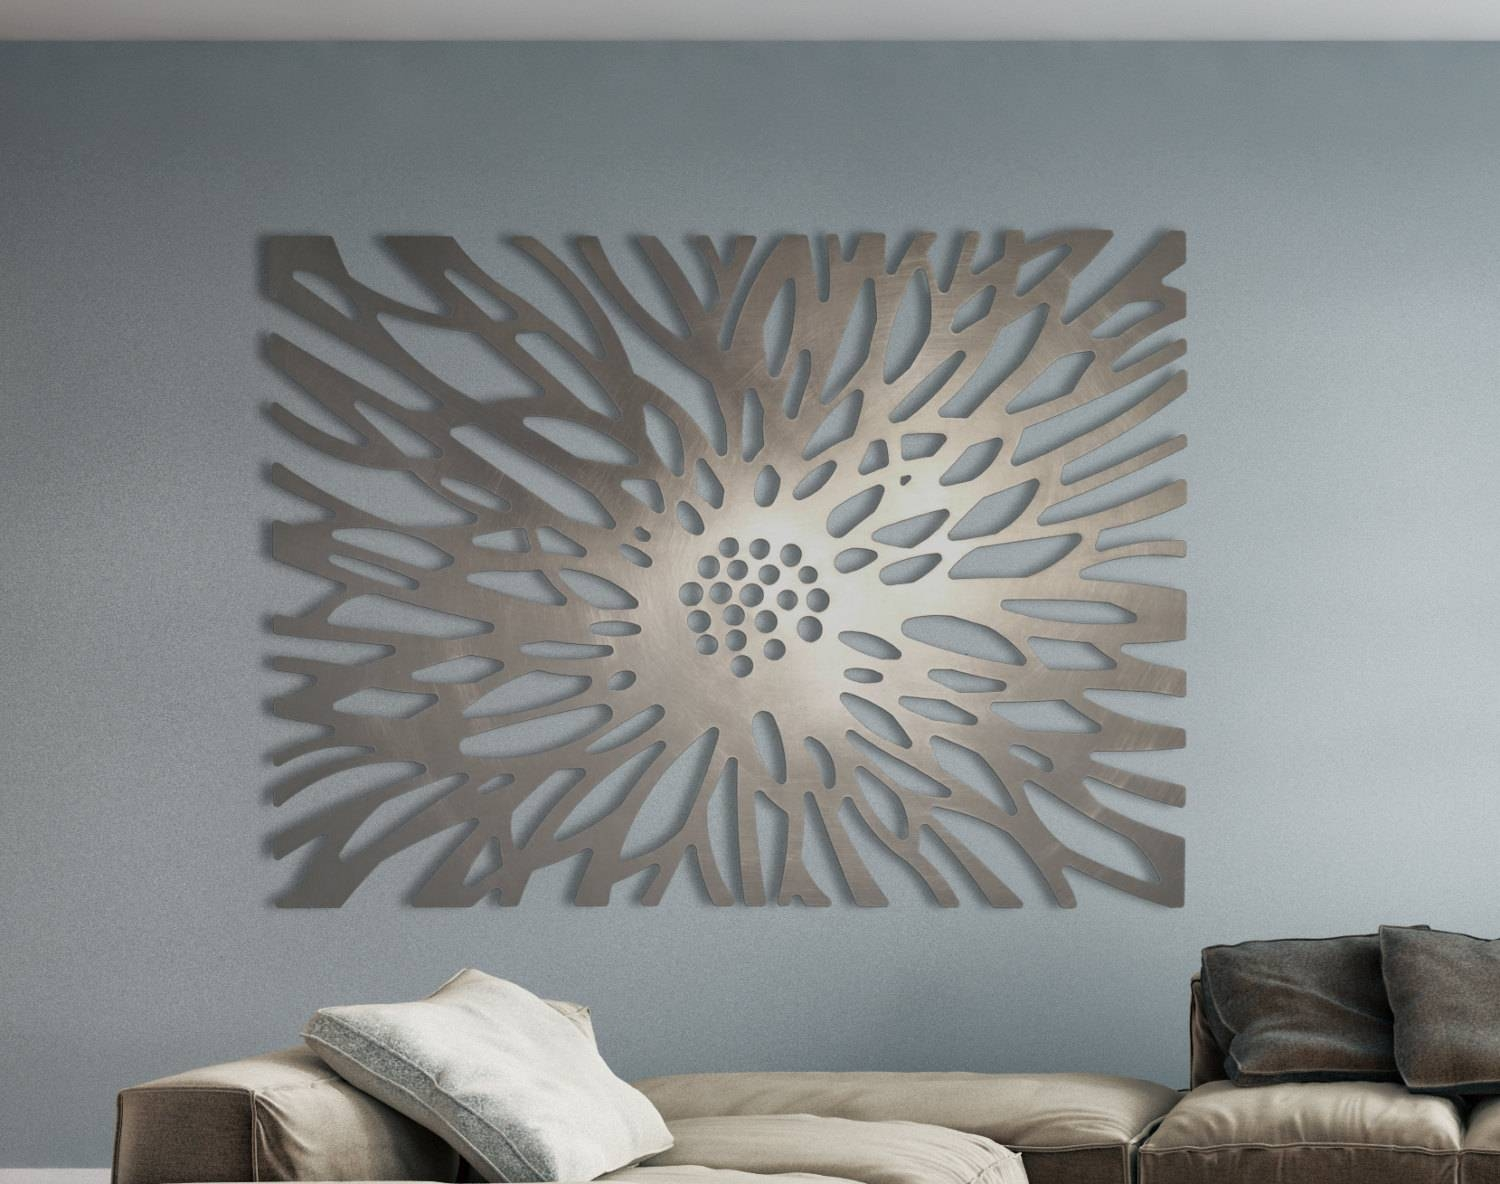 Modern Design Laser Cut Wall Art Exclusive Laser Metal – Wall Shelves Inside Recent Exclusive Wall Art (View 17 of 20)